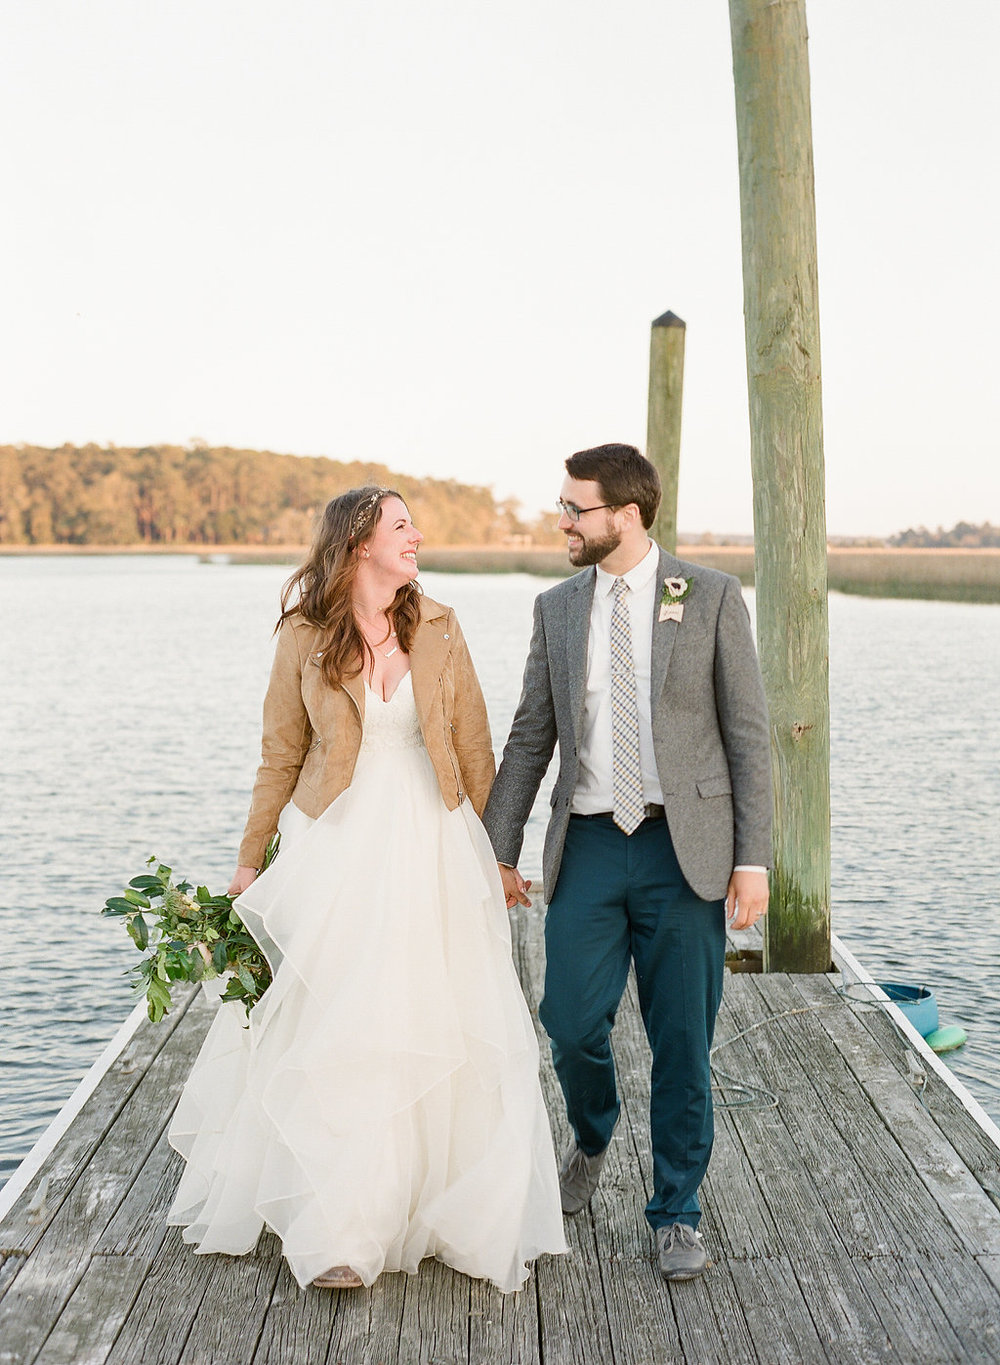 Rustic Savannah Wedding At The Wyld Dock Bar Featured On